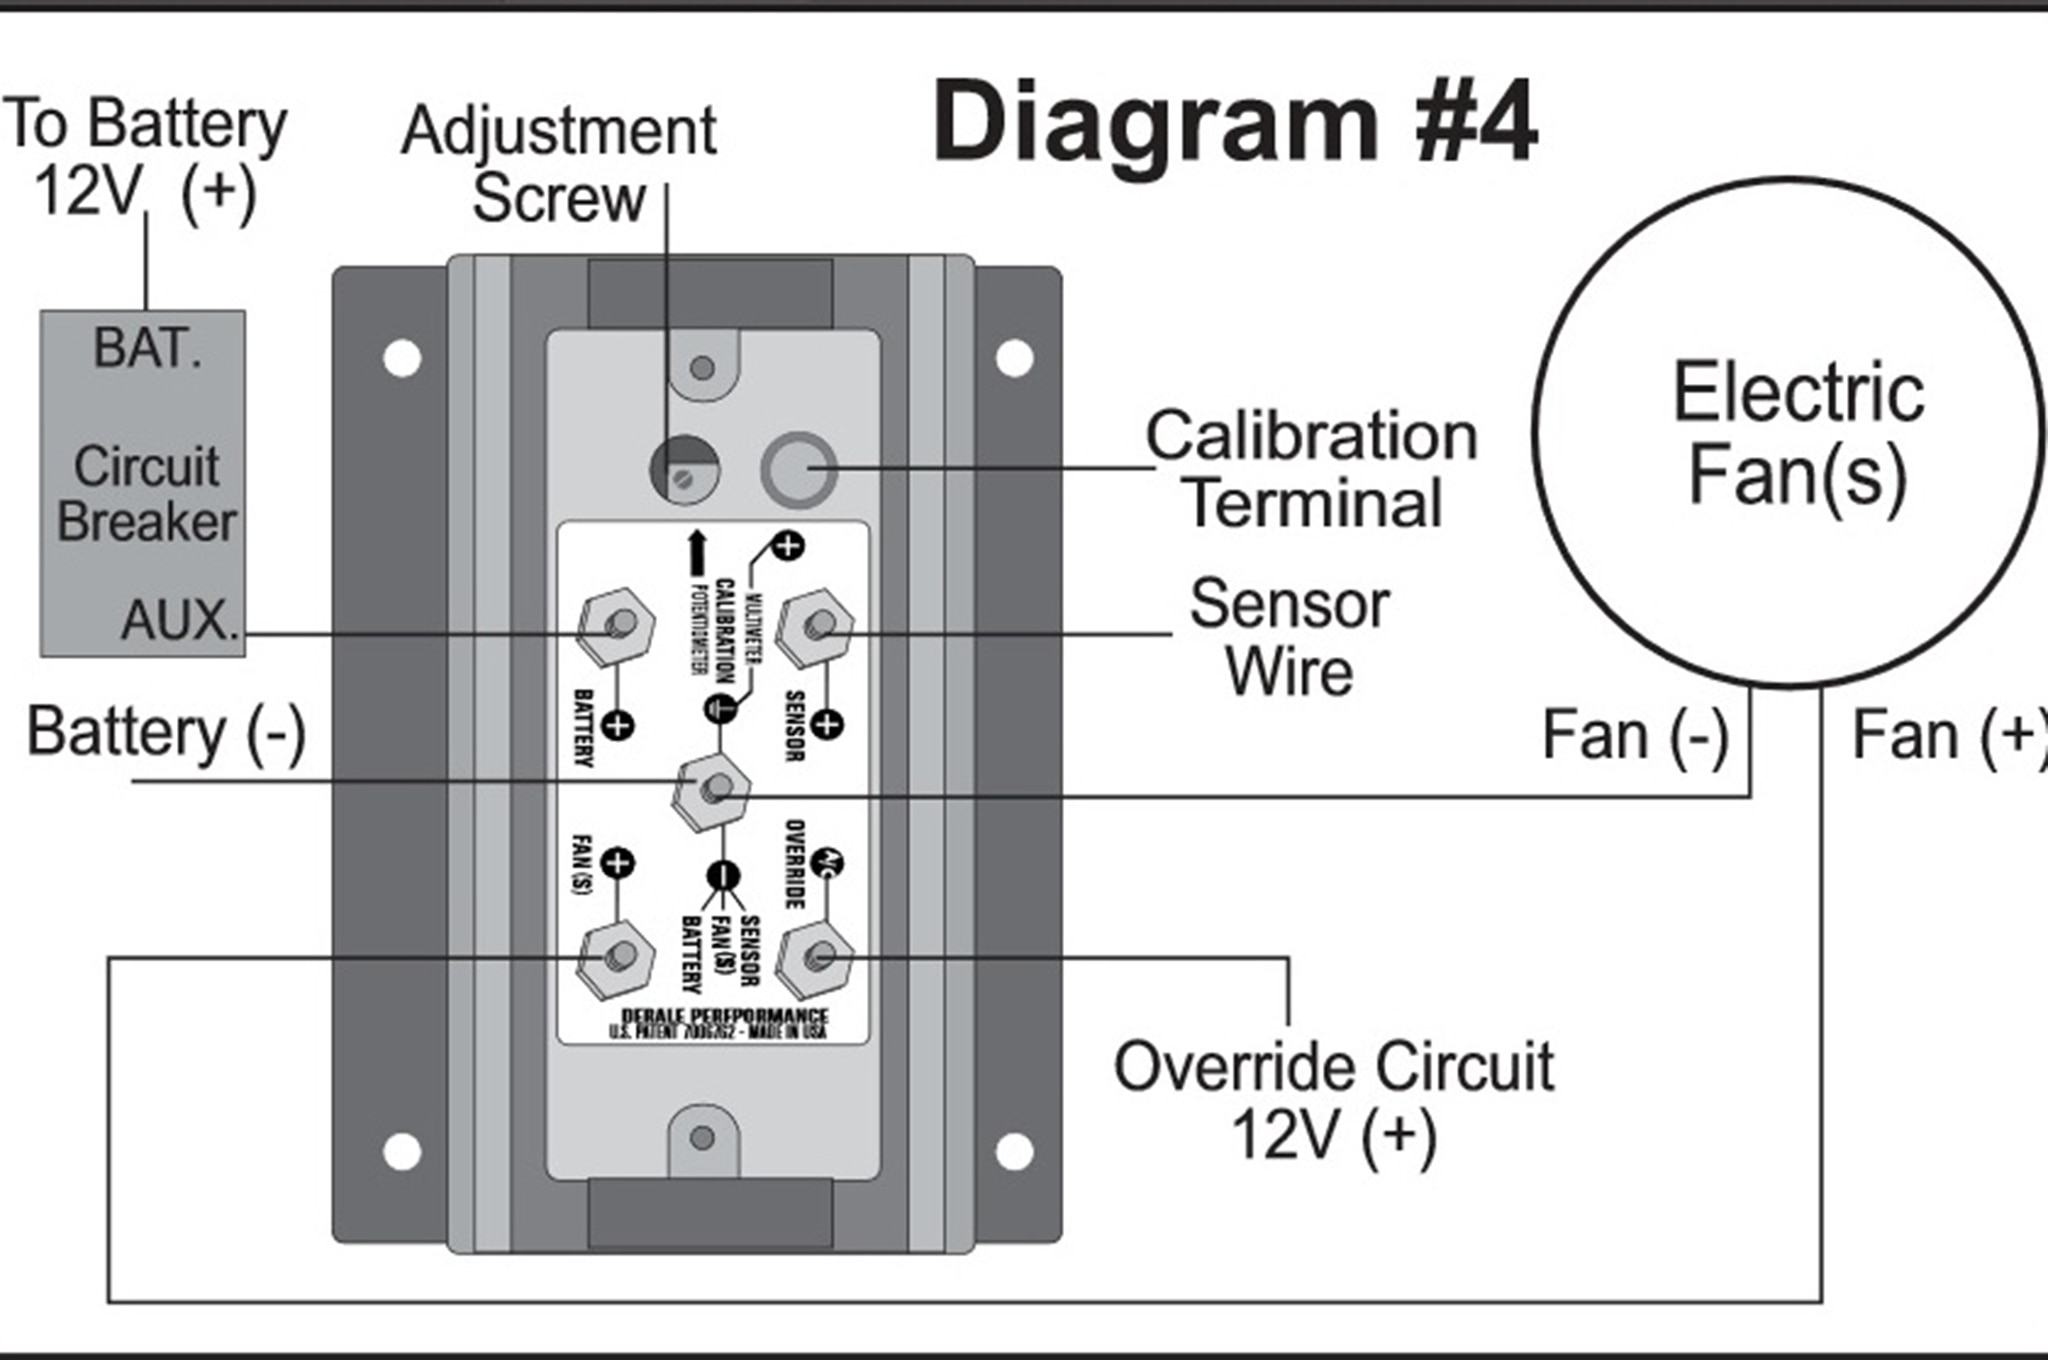 elec fan wiring diagram external voltage regulator the derale controller can save your electrical